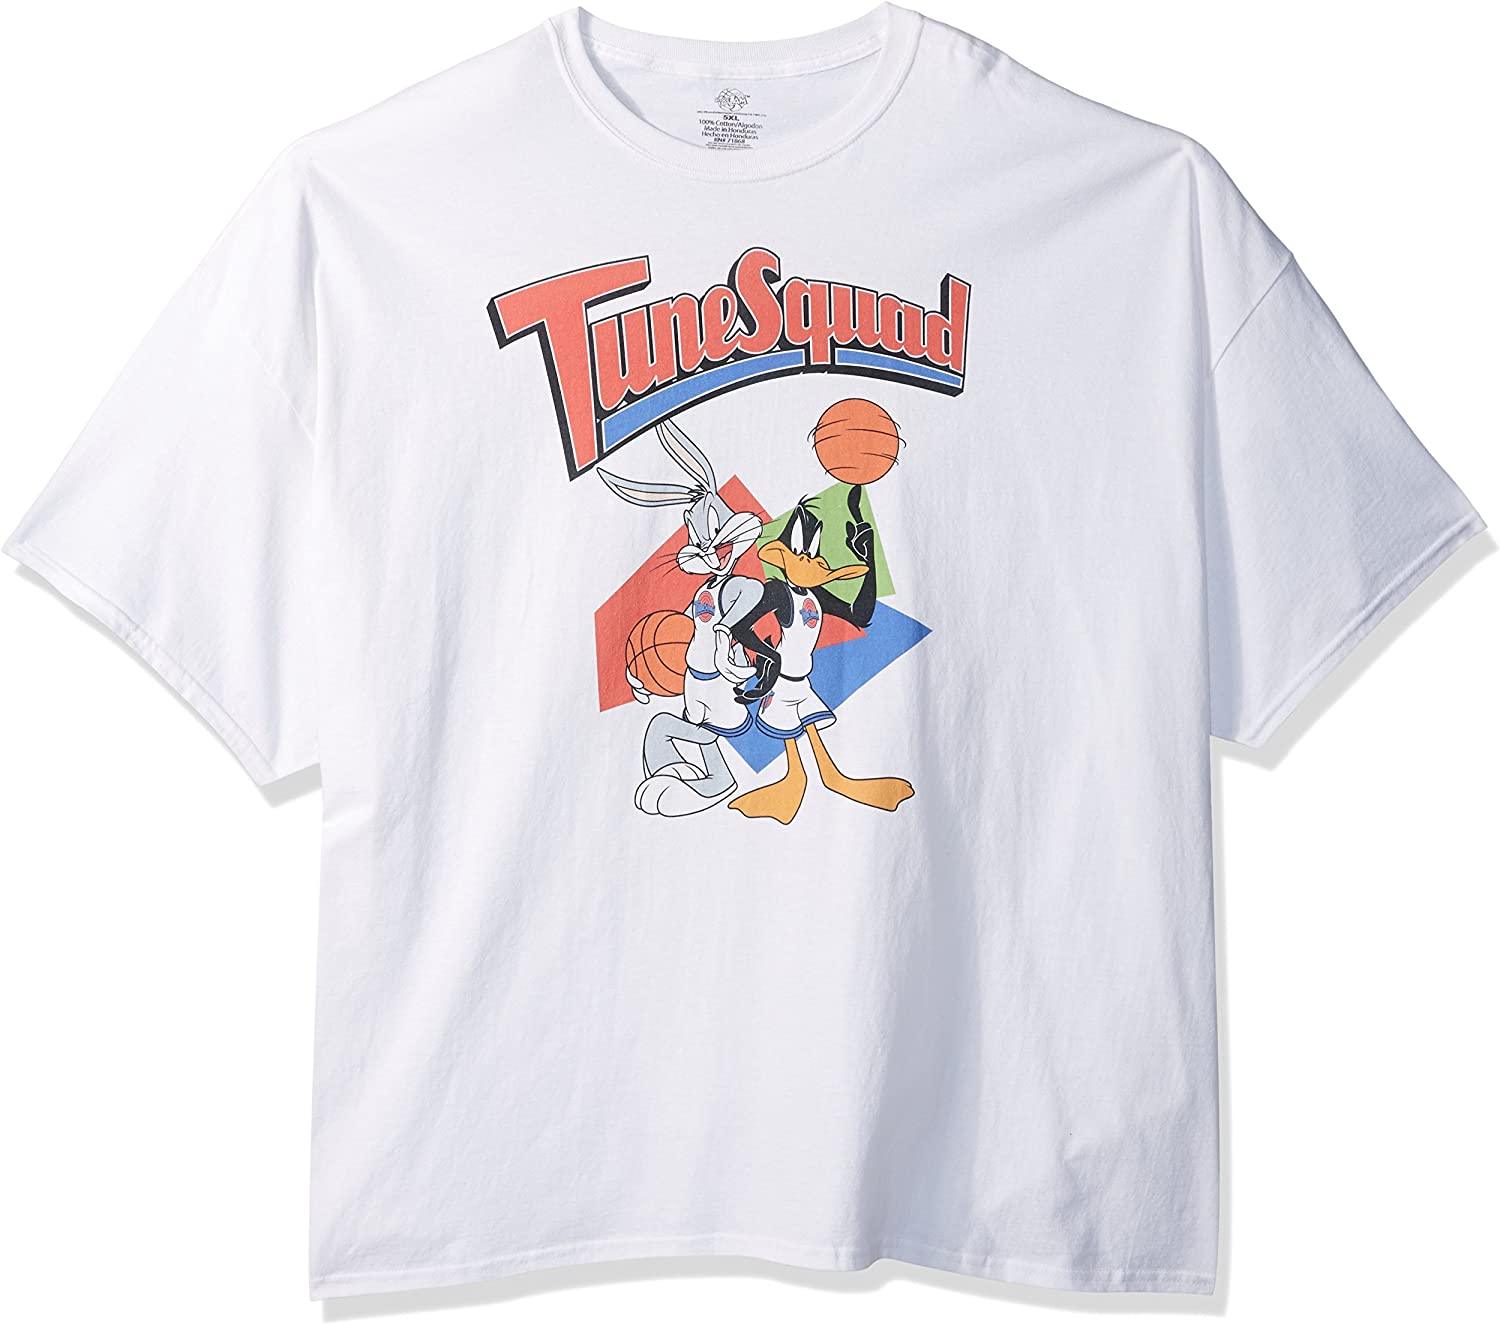 Warner Brothers Retro Tune Squad Space Jam T-Shirt Big and Tall - Weiß -  X-Groß: Amazon.de: Bekleidung